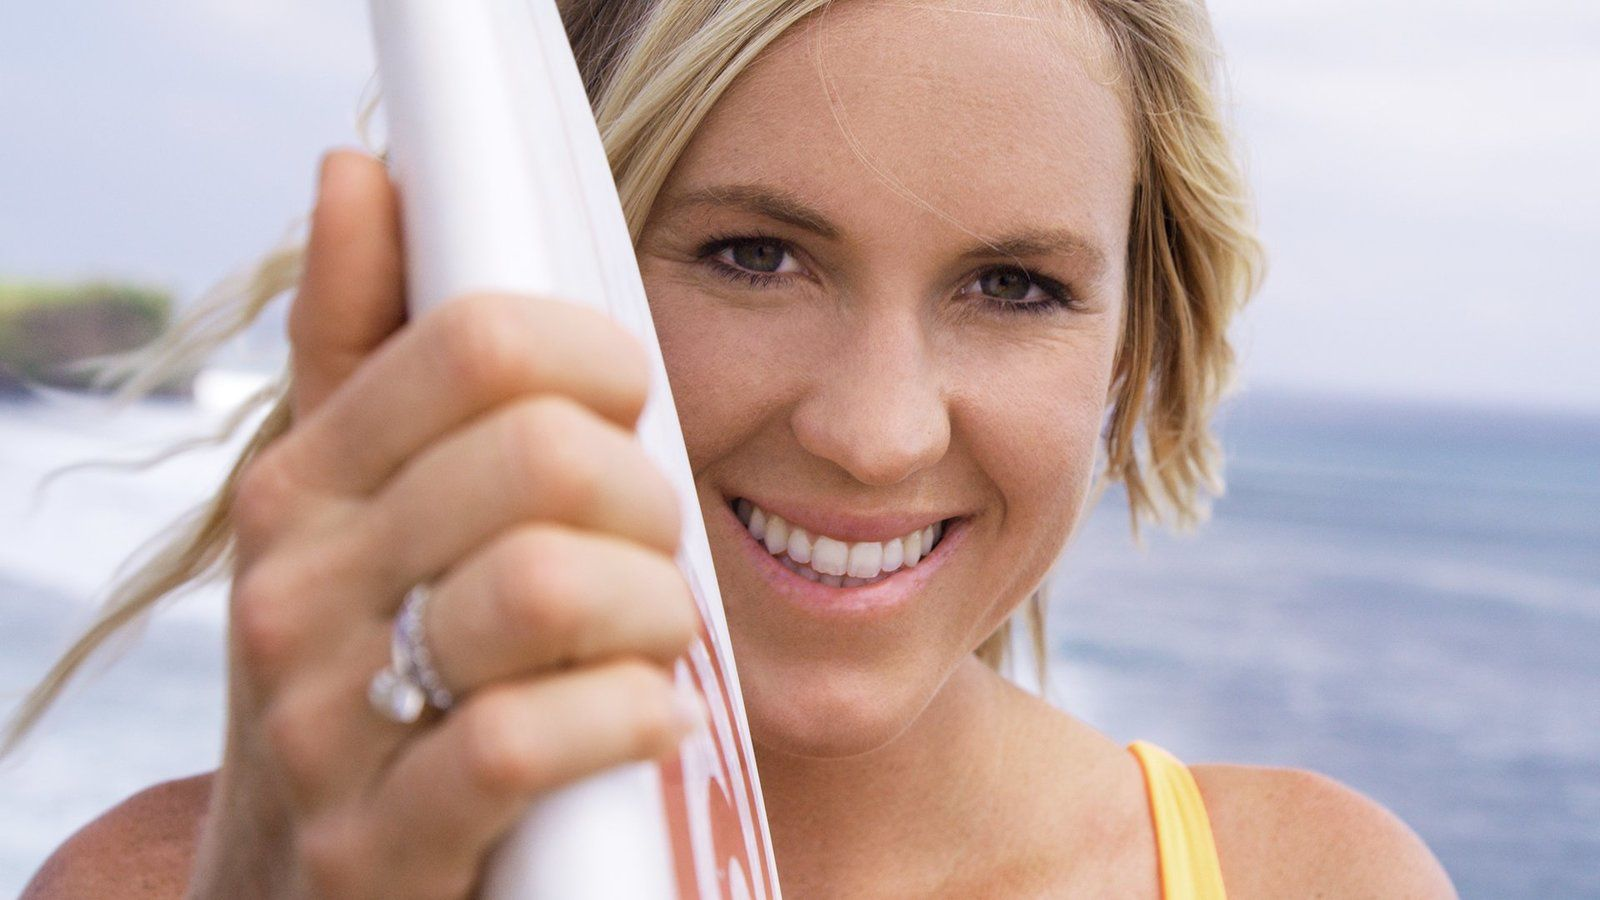 Bethany Hamilton : Unstoppable (BANDE-ANNONCE) Documentaire de Aaron Lieber